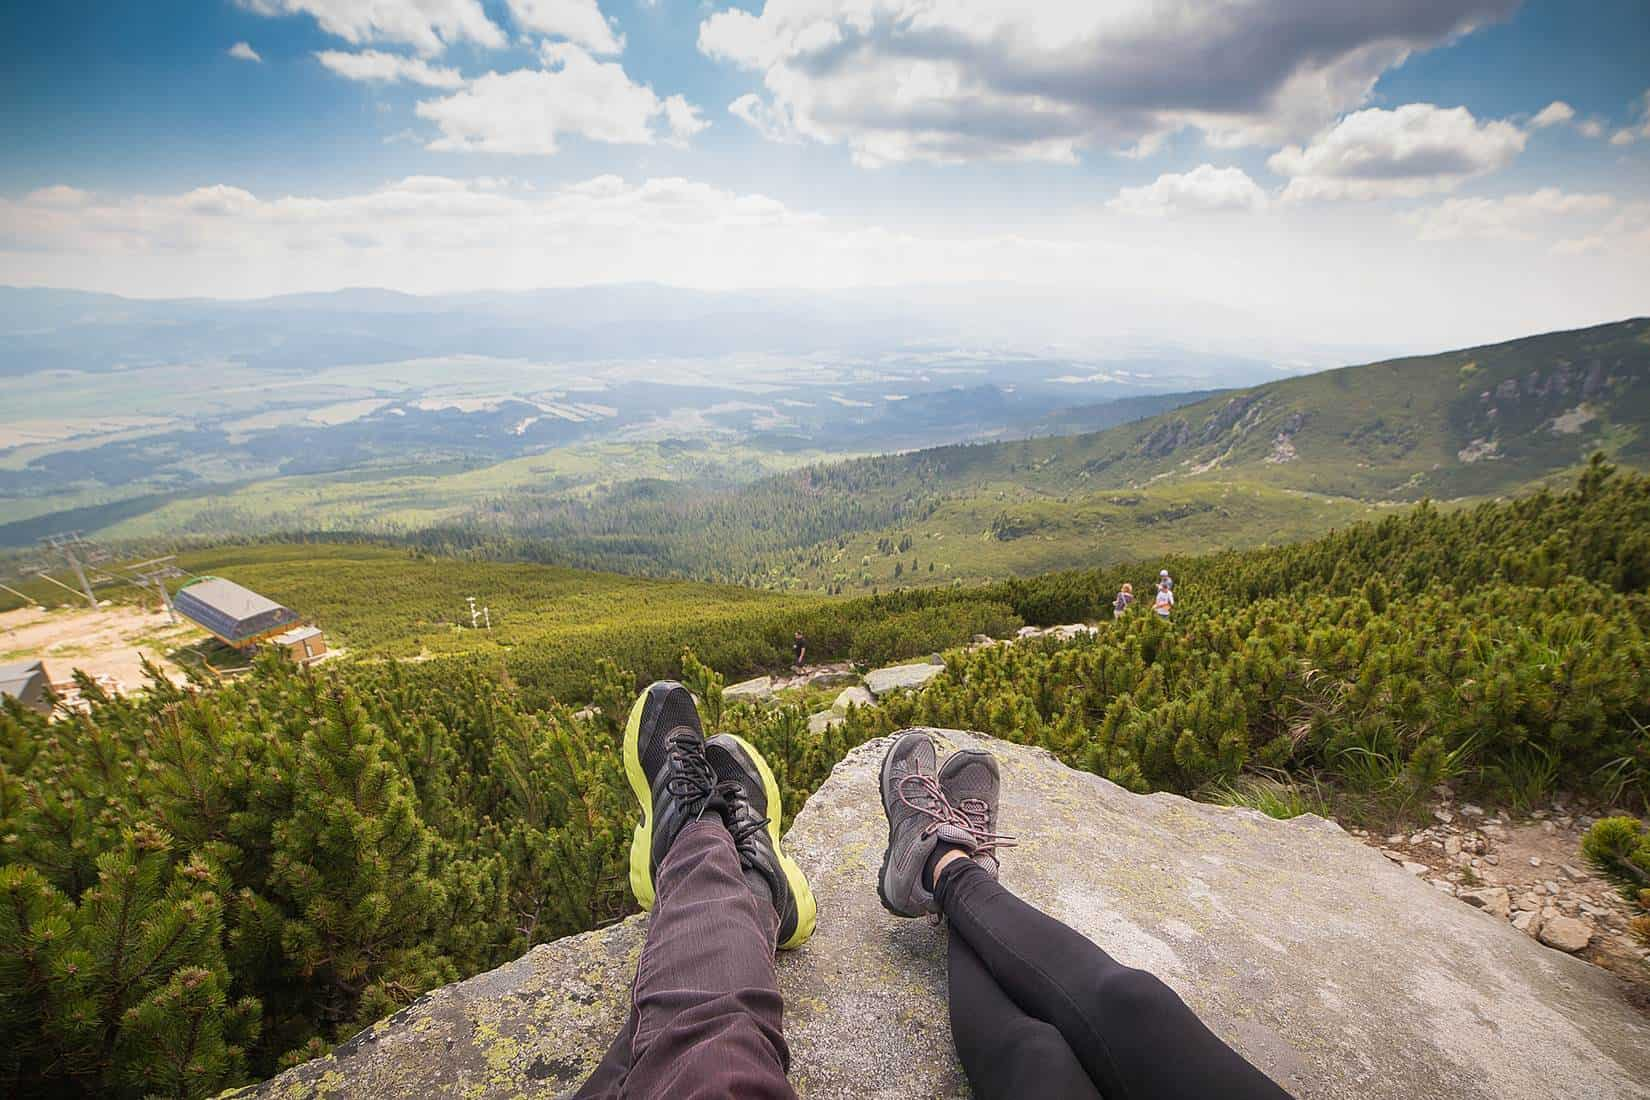 Hike - Cheap Date Idea - From Pennies to Pounds